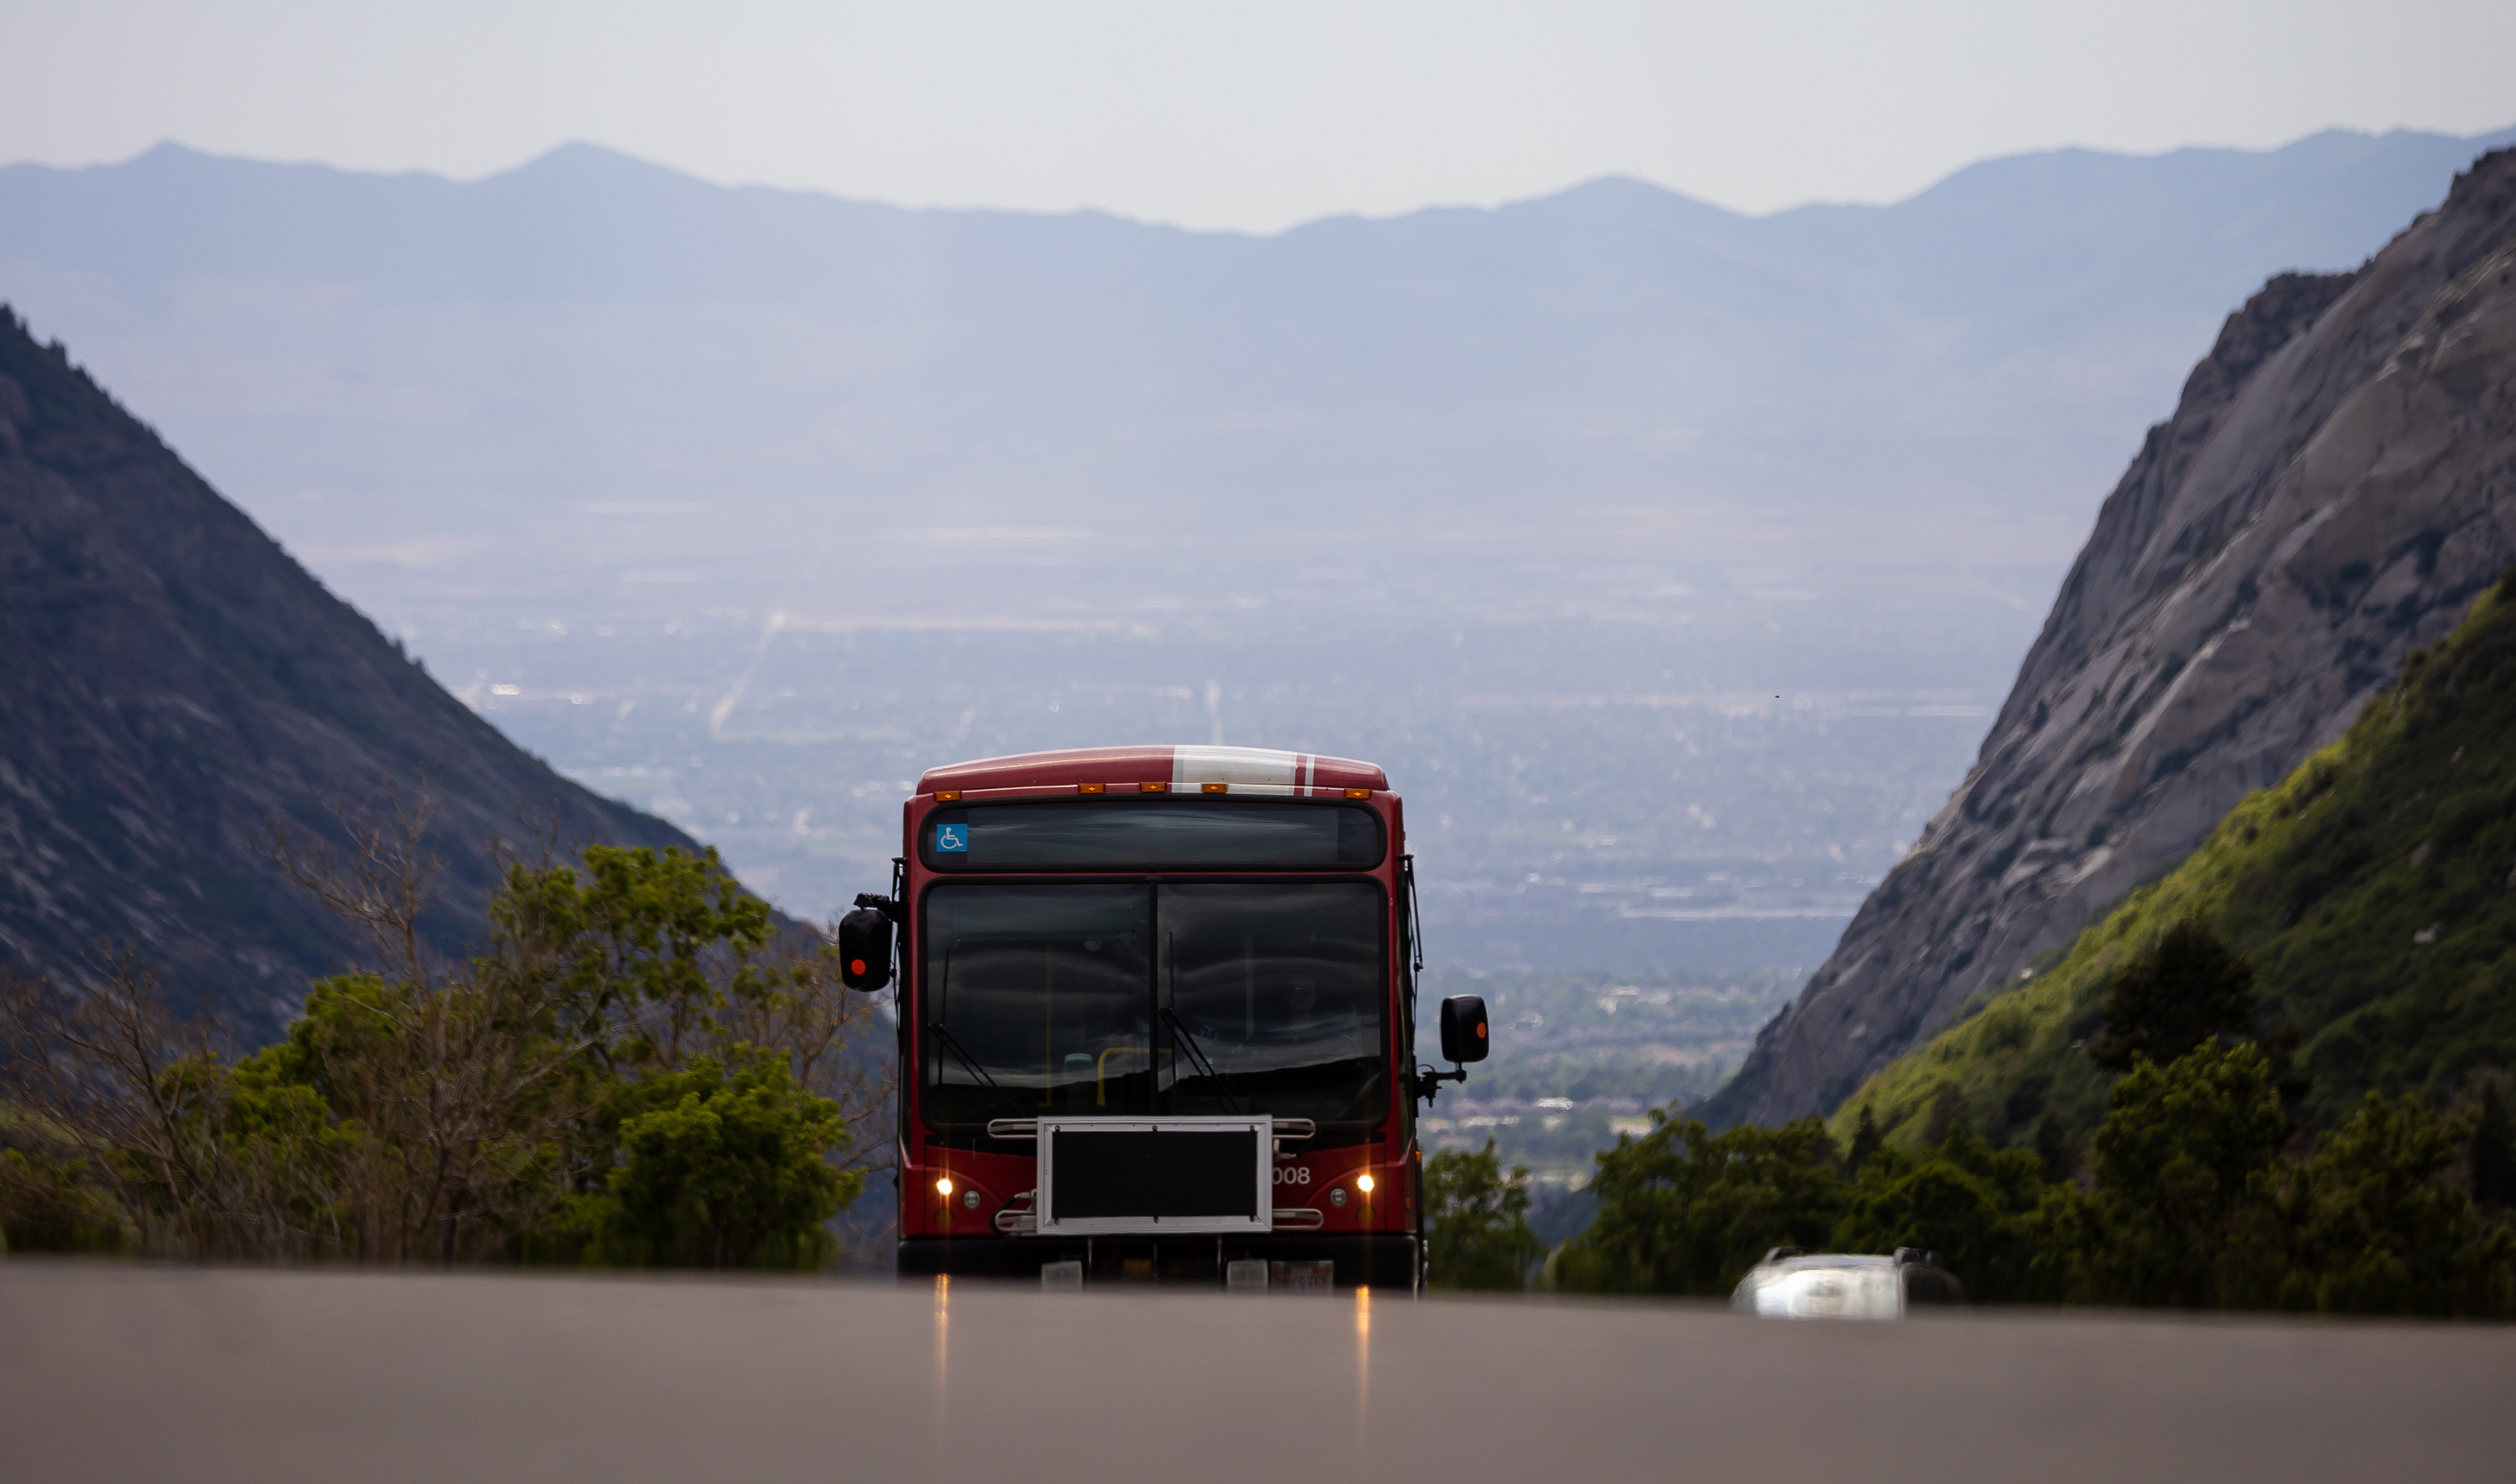 A Utah Transit Authority bus drives up Little Cottonwood Canyon on Tuesday, June 29, 2021.